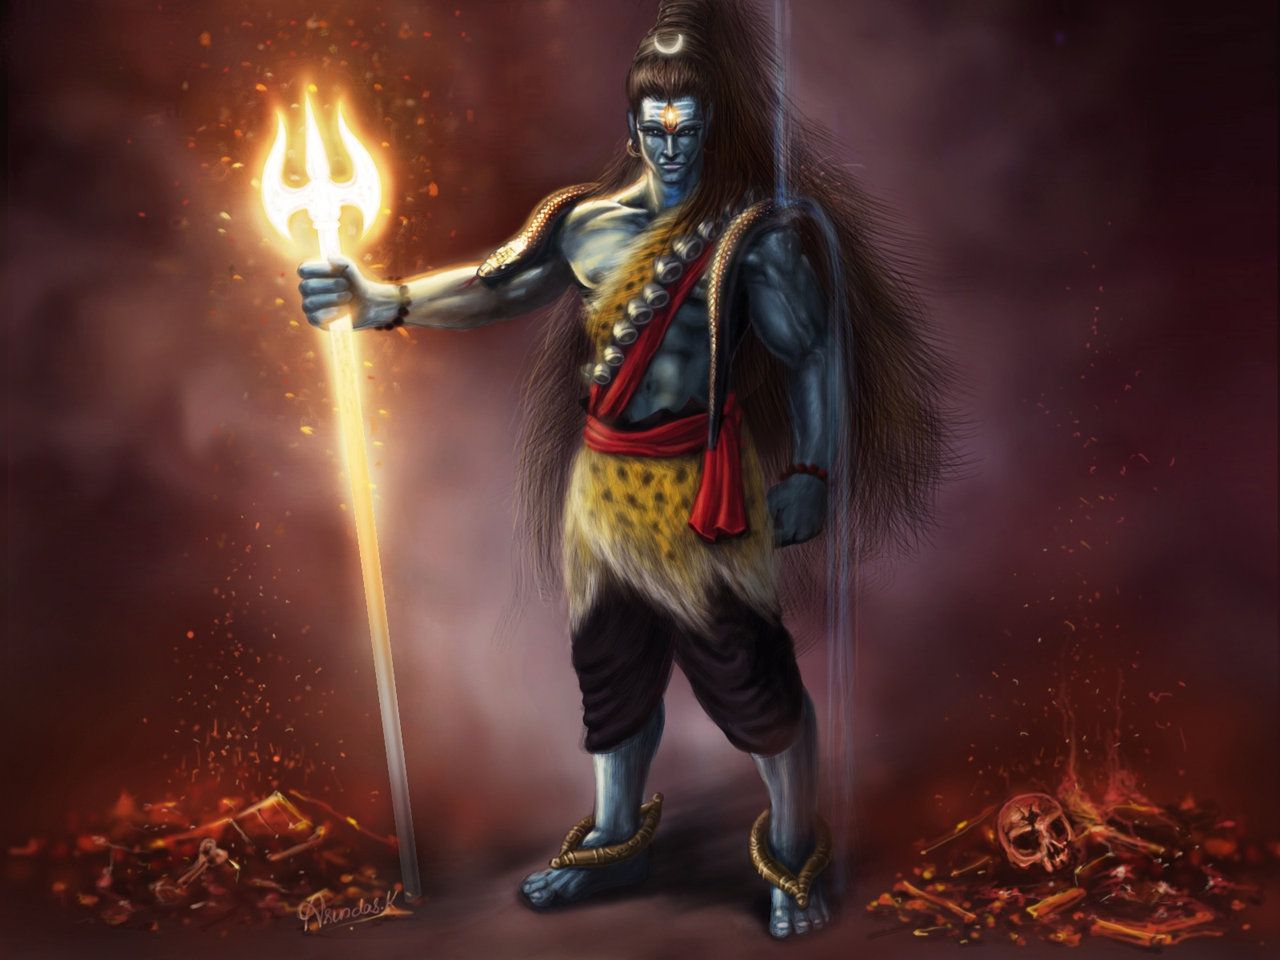 lord shiva animated wallpapers for mobile images (41) - hd | things